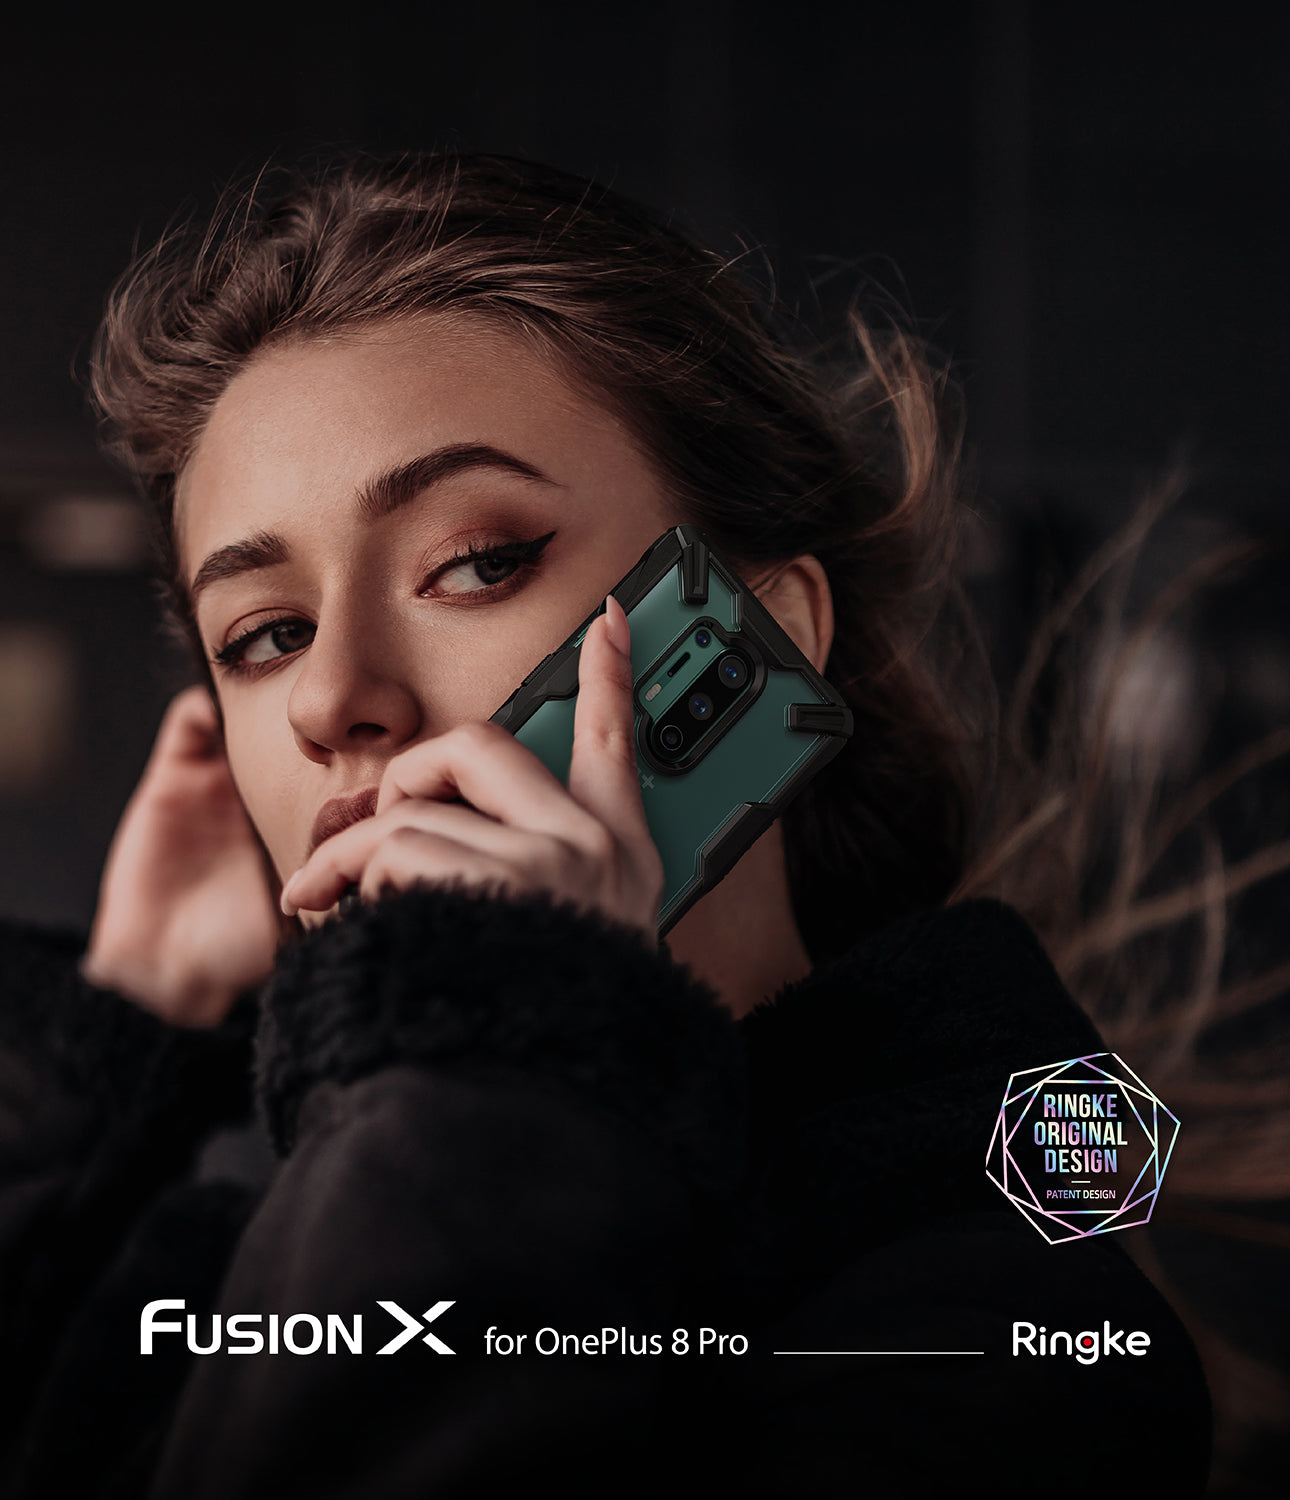 ringke fusion-x case for oneplus 8 pro